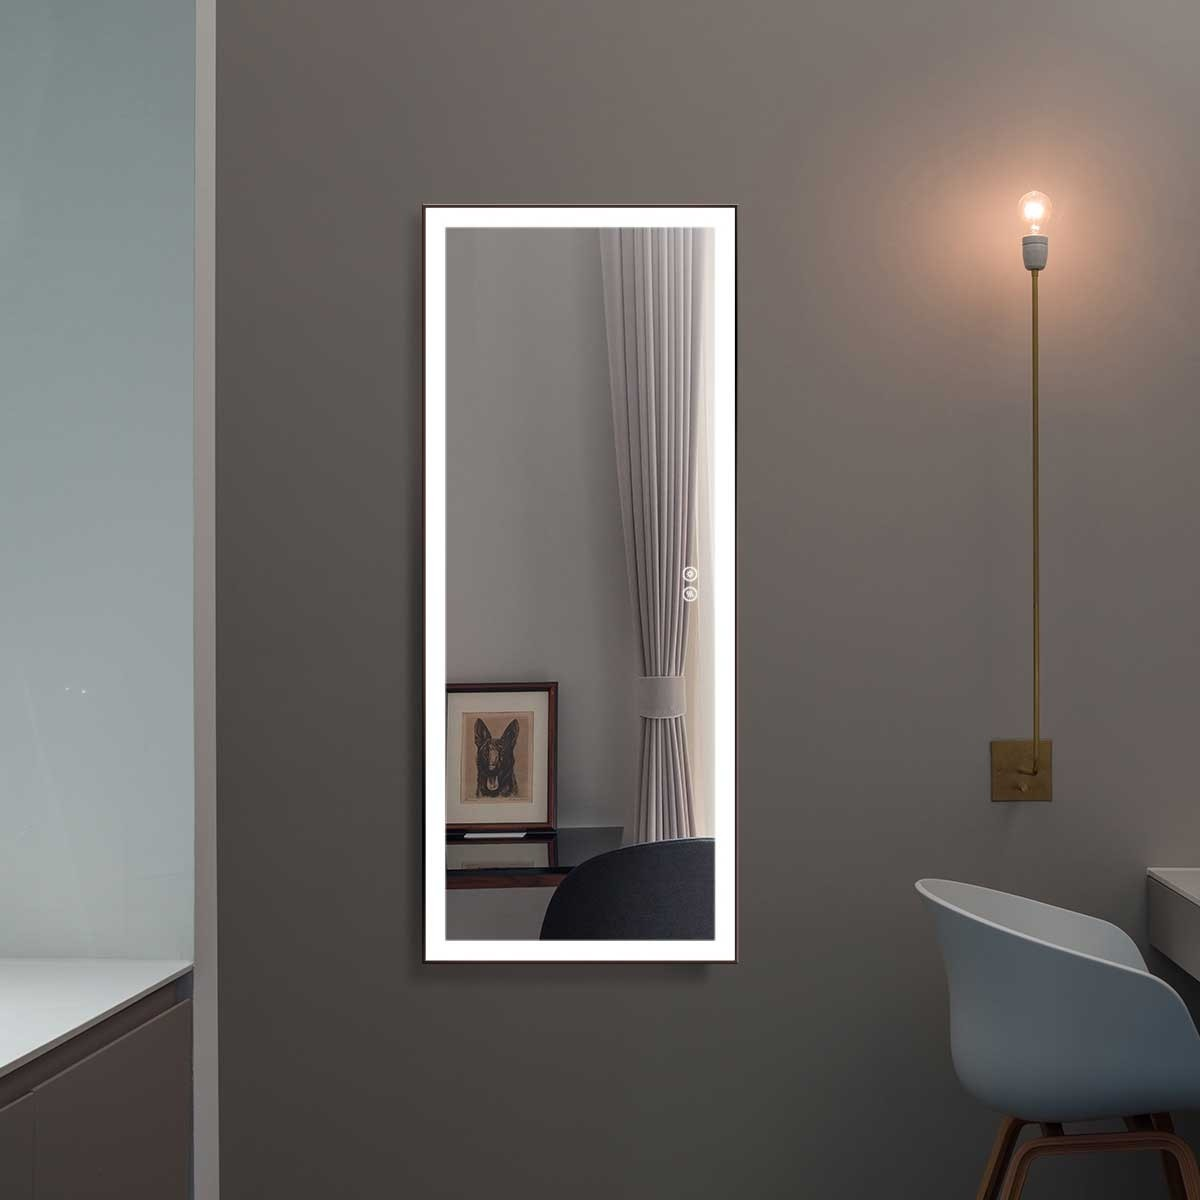 DECORAPORT 48 x 20 Inch LED Full-Length Dress Mirror with Touch Button, Black Frame, Dimmable, Cold&Warm Lights (DJ2-4820-B)